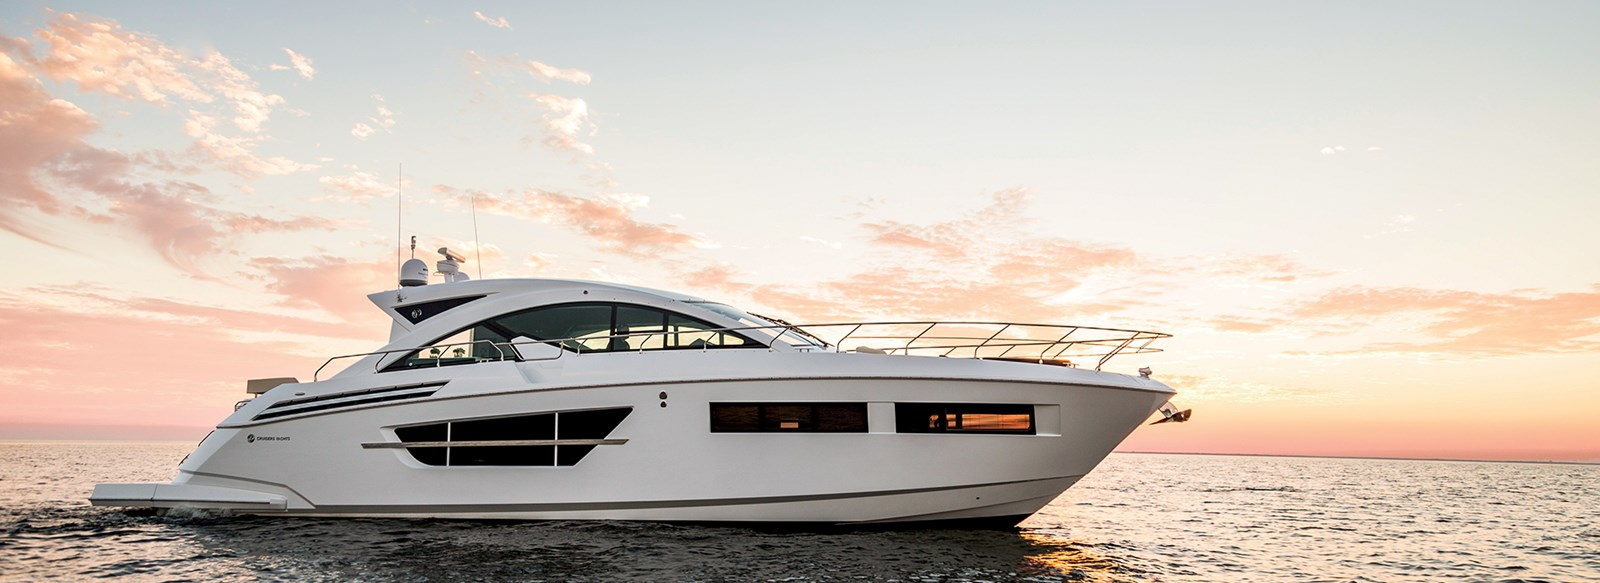 New Cruisers 60 Cantius Yachts For Sale